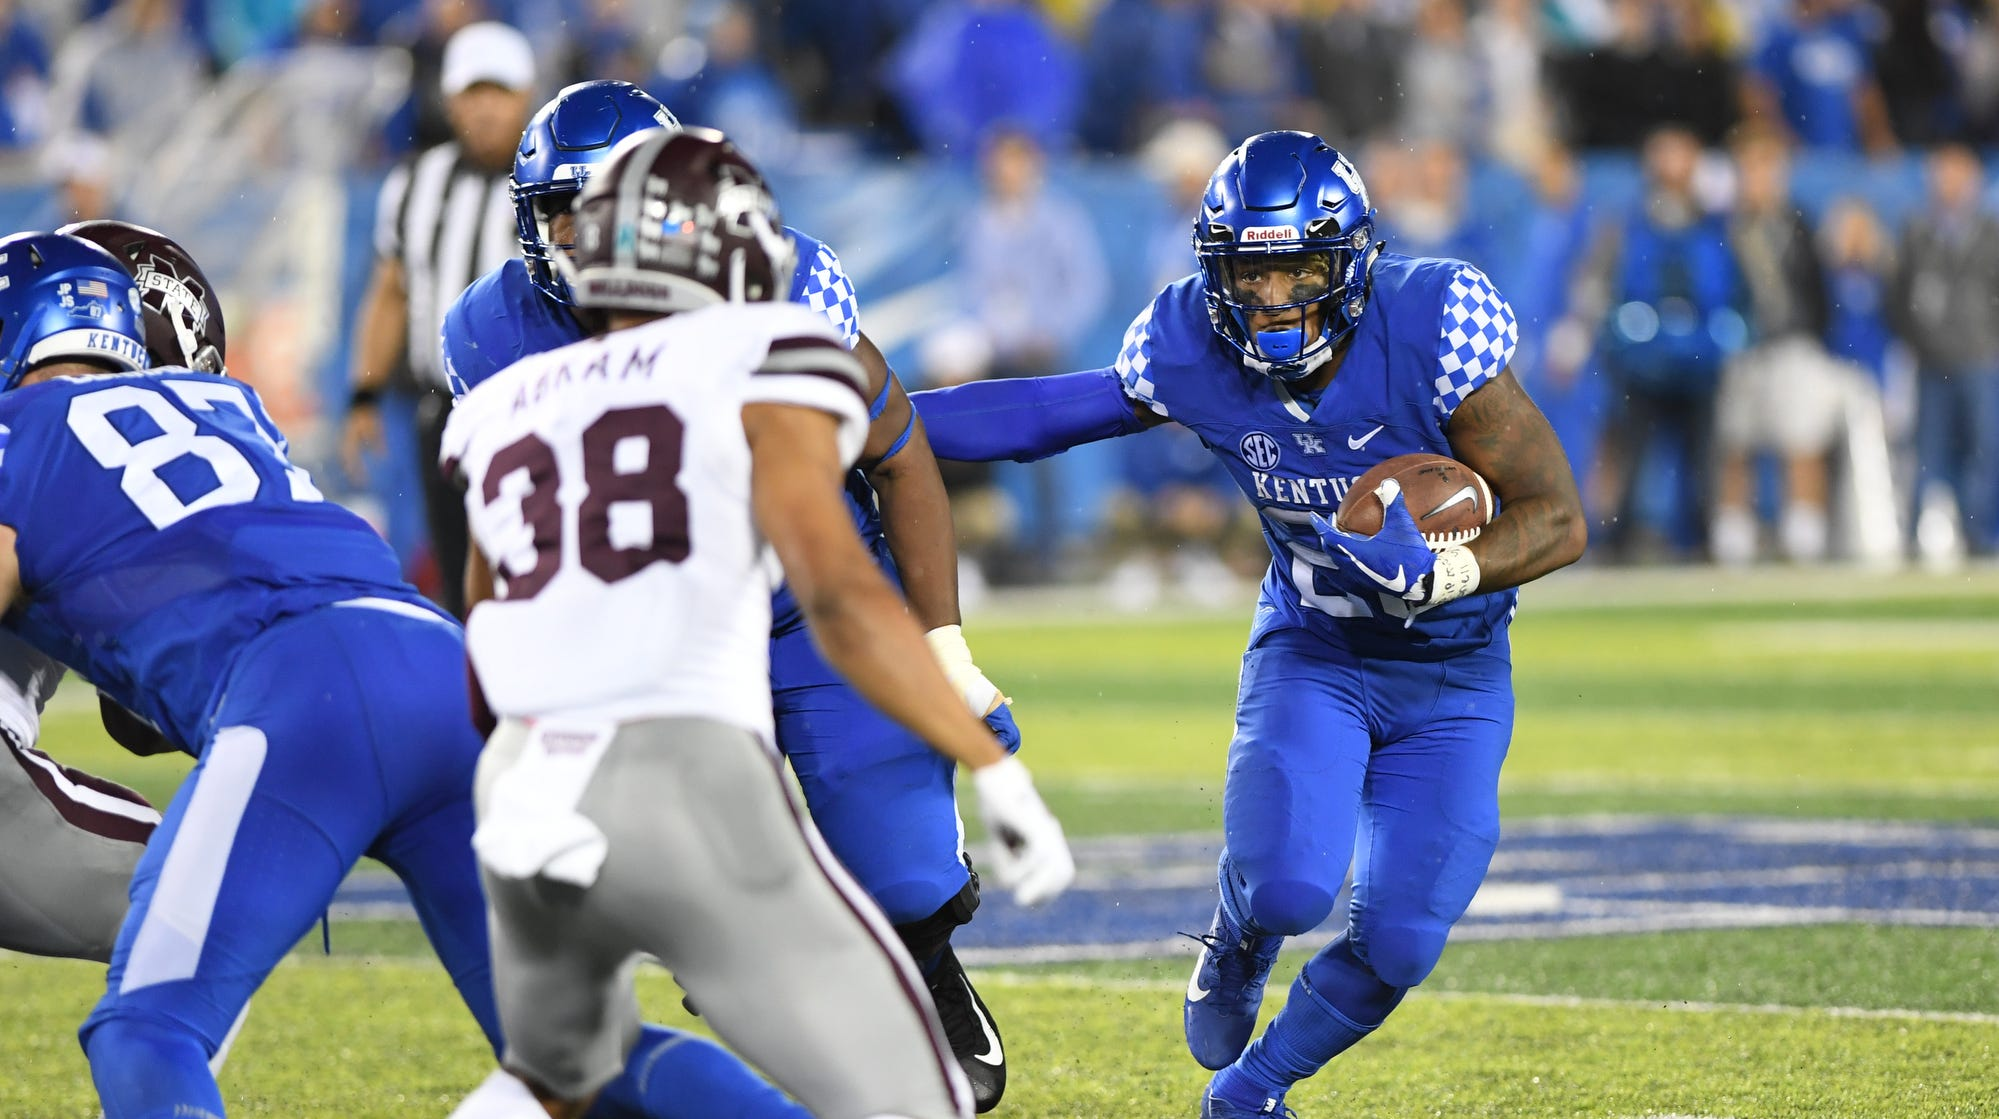 Benny Snell runs through Mississippi State for 4 touchdowns, 165 yards